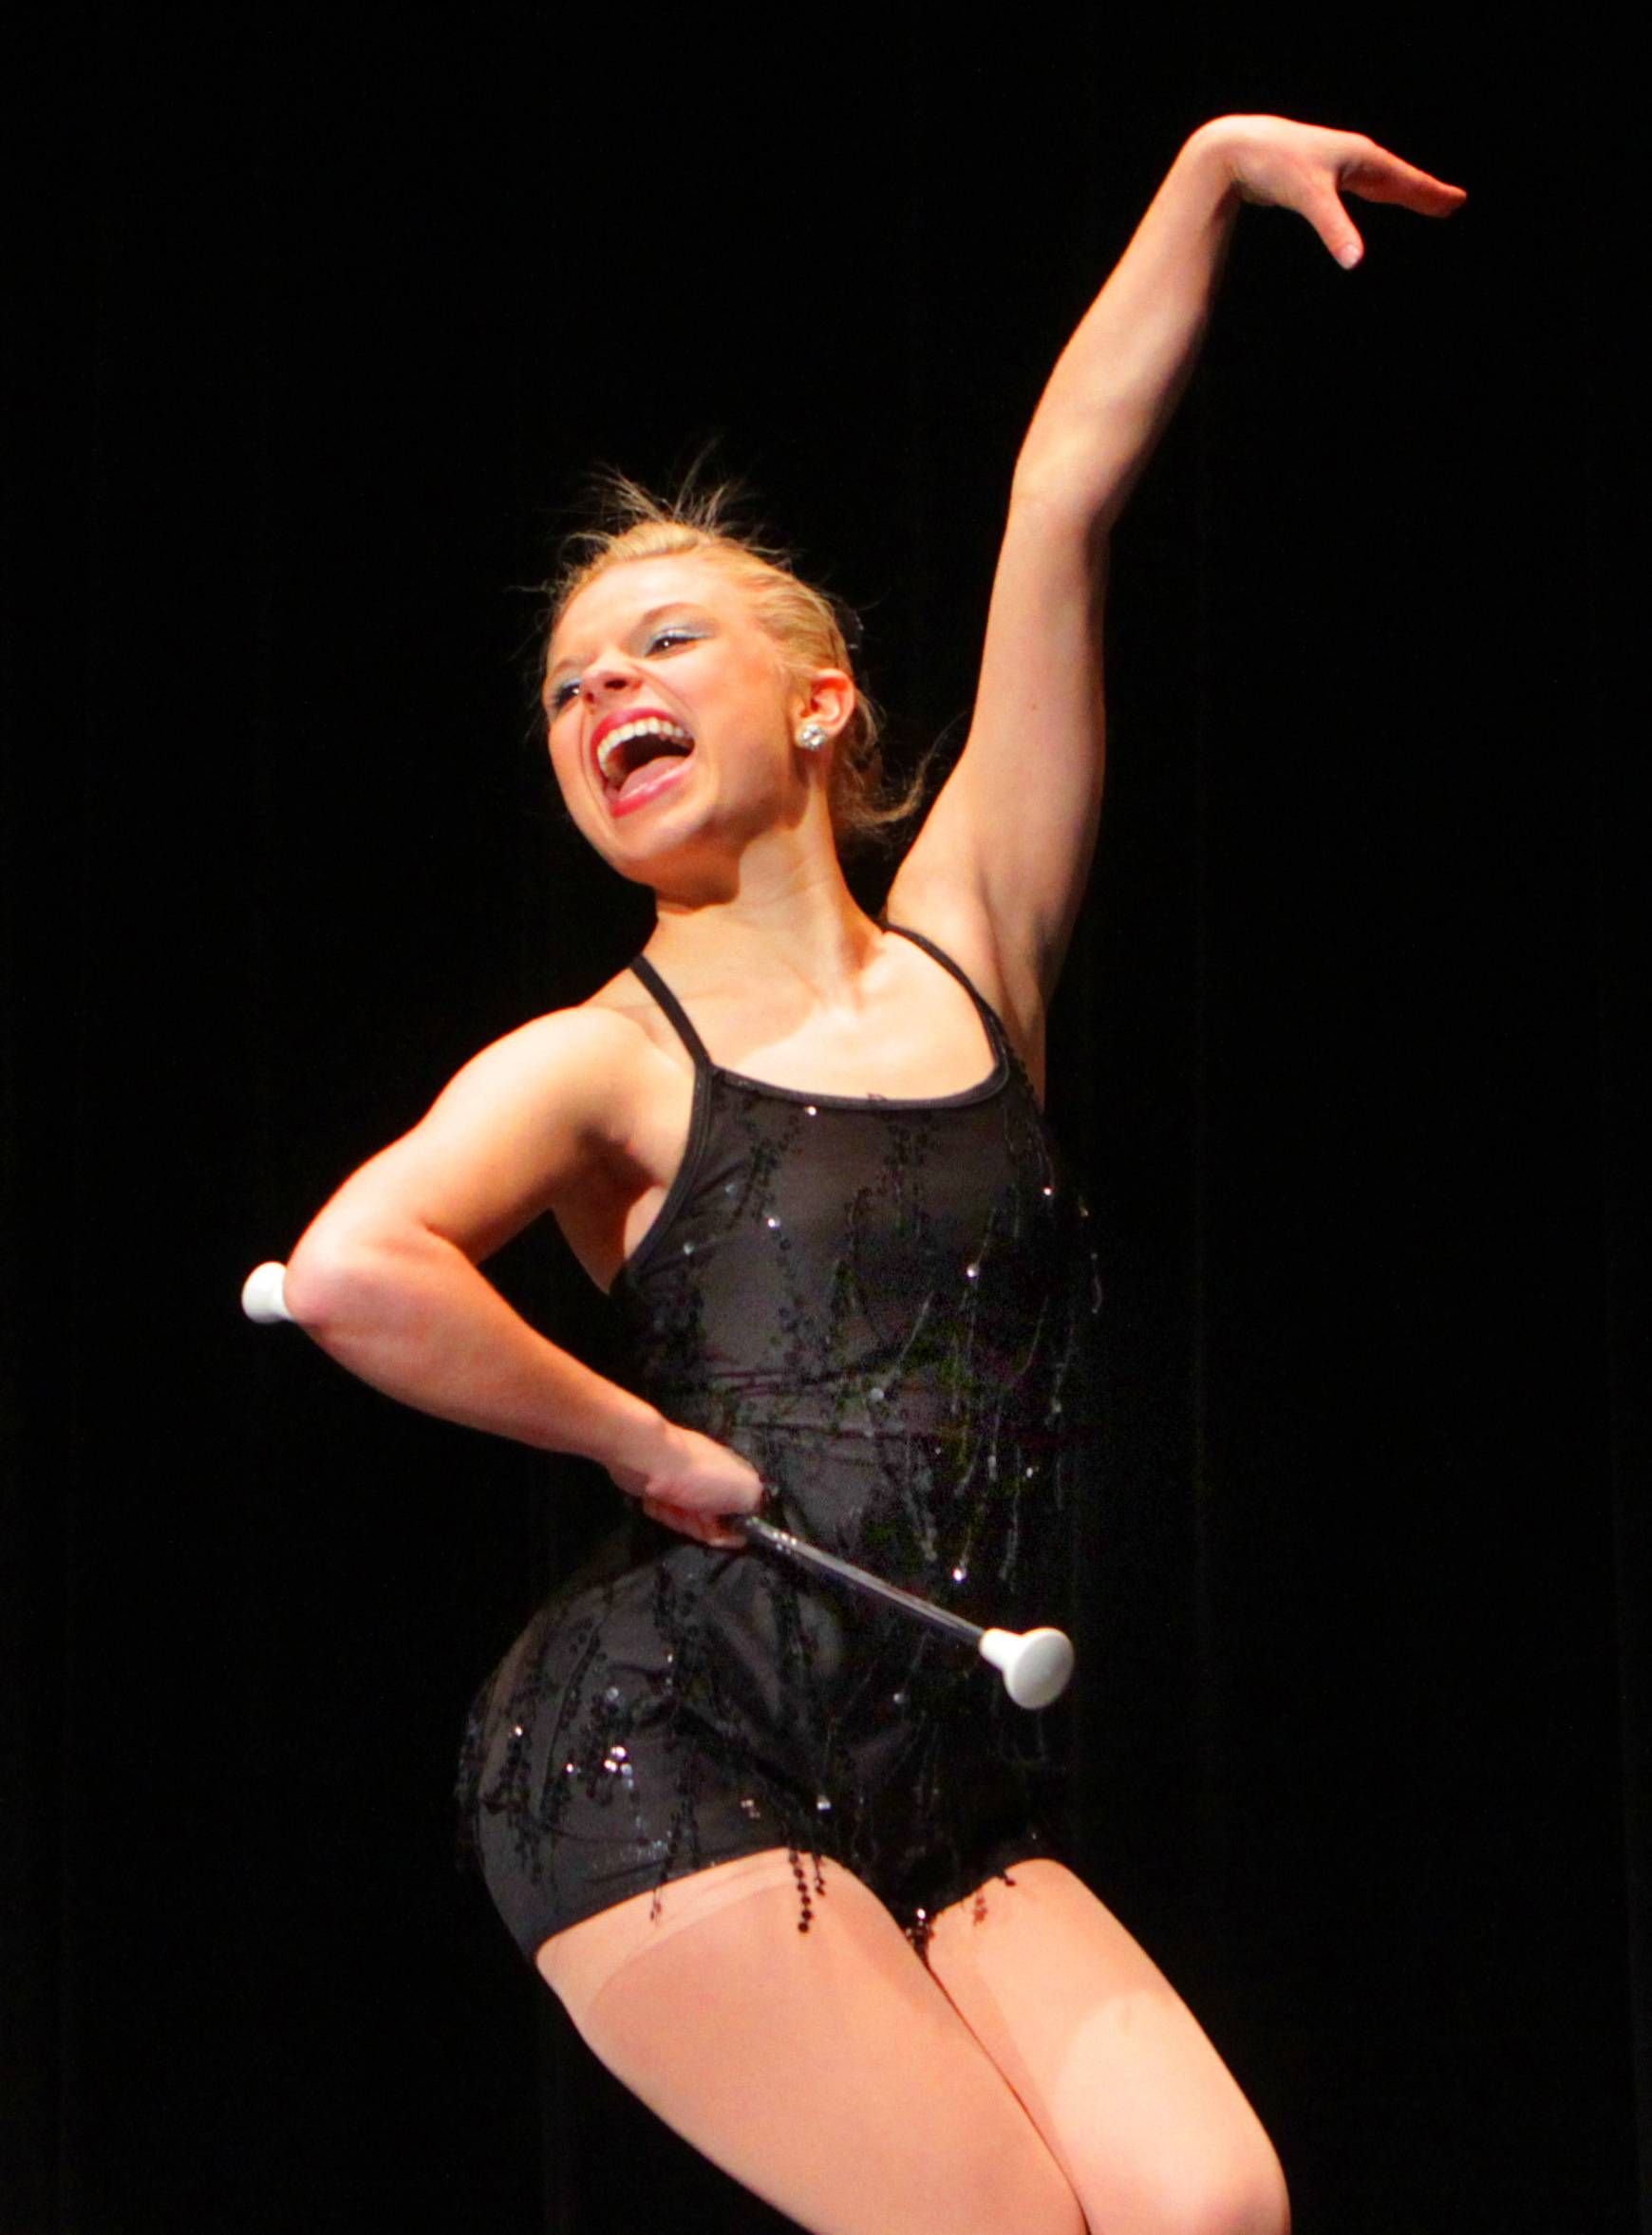 Lauren Bergquist, a senior at Bartlett High School, will be twirling her baton at TalentFest 2014 at the Hemmens. She was one of two acts selected by judges in her school's contest.